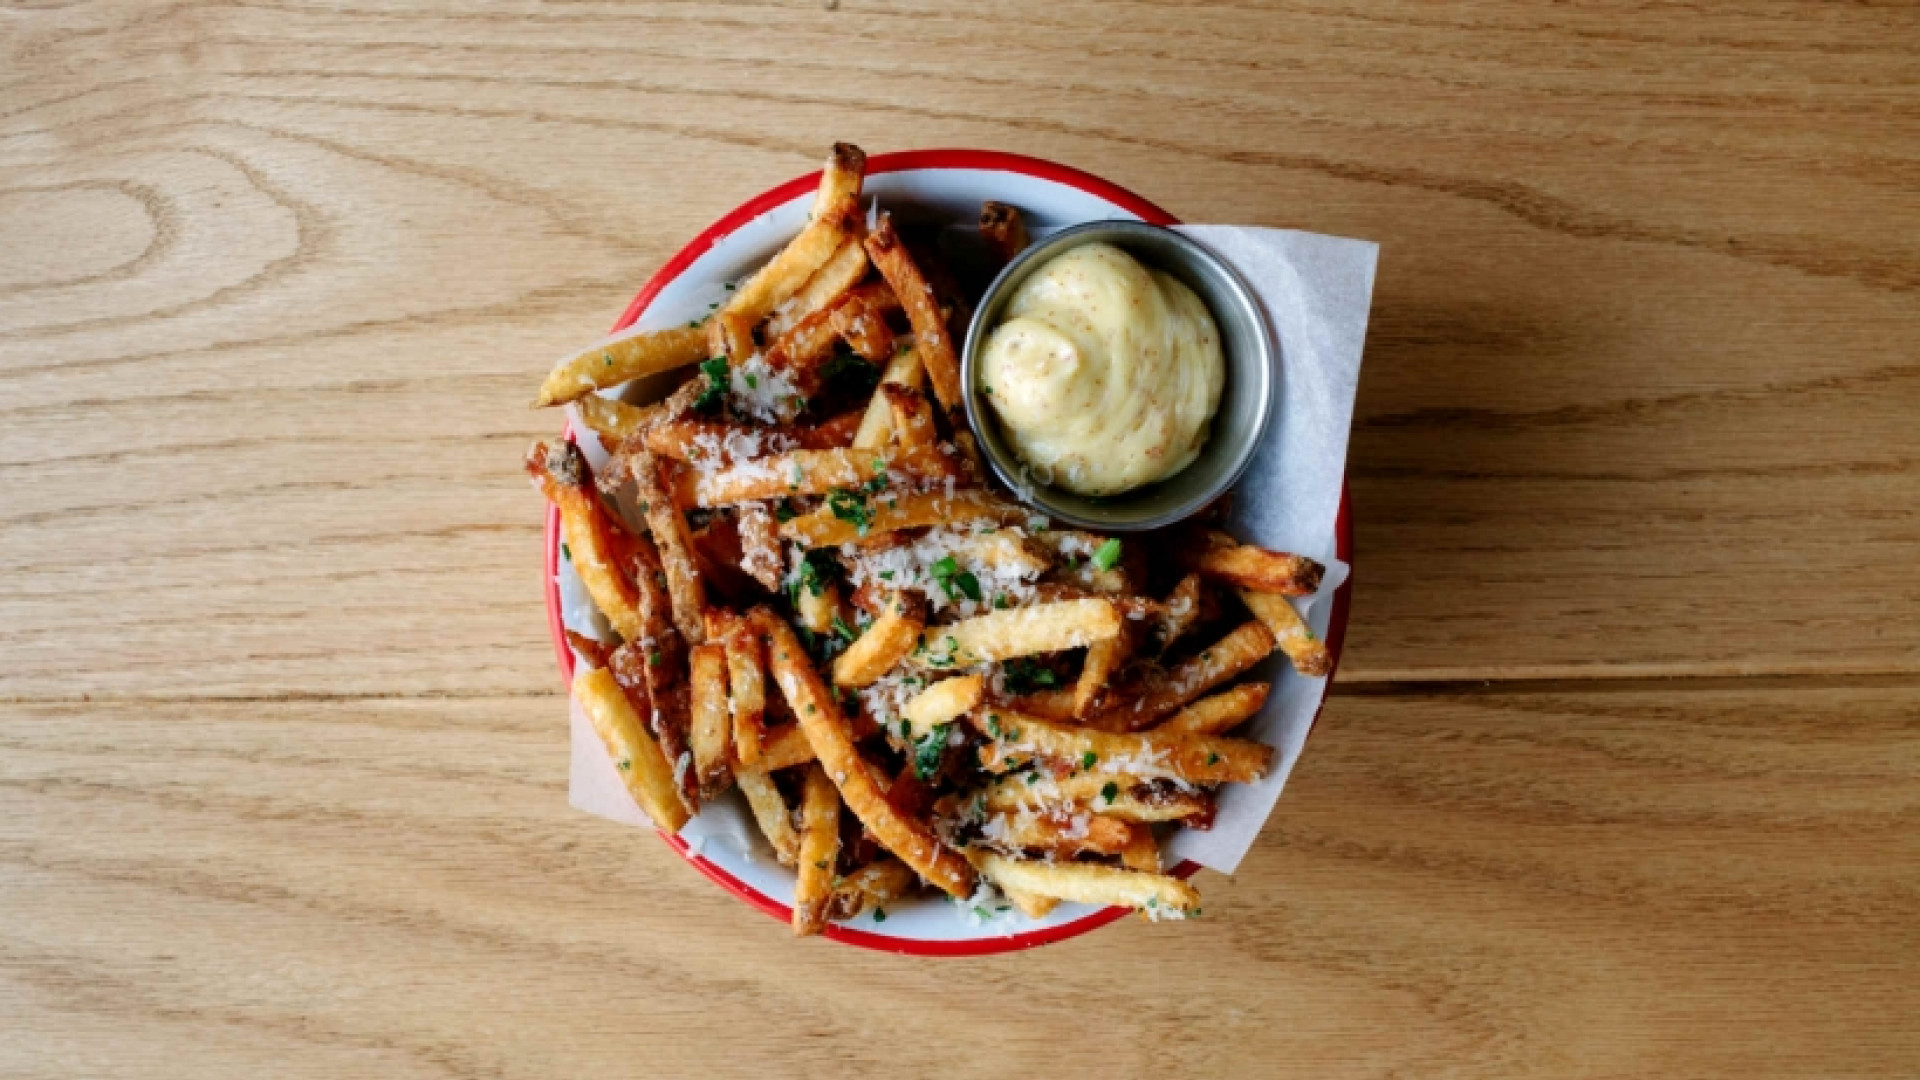 Alcohol delivery in Toronto | French fries at Bandit Brewery and restaurant in Toronto